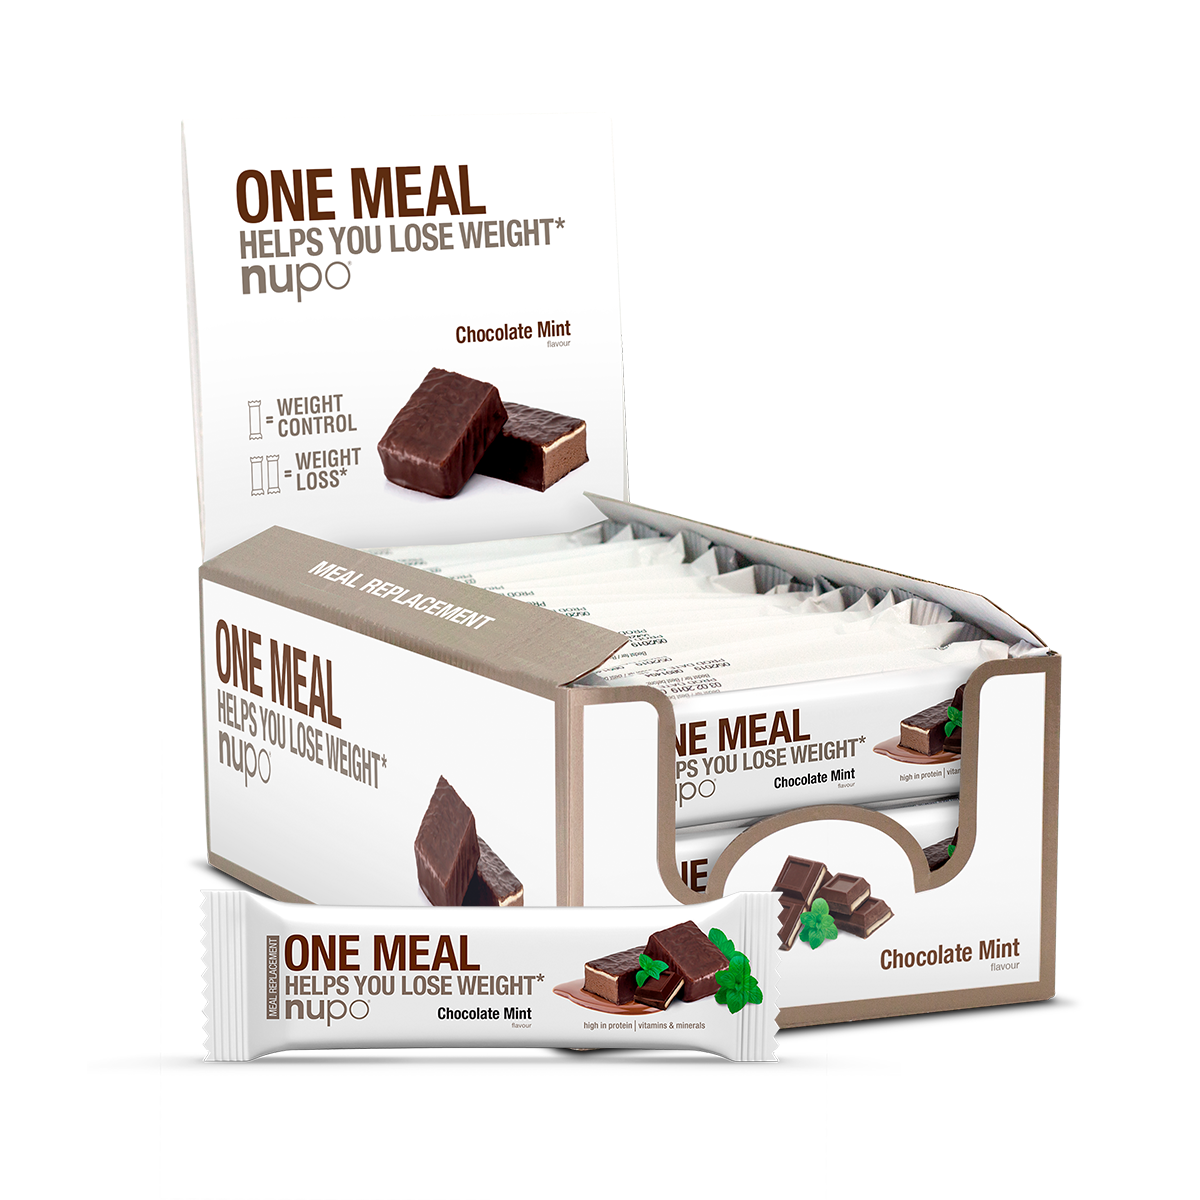 nupo-one-meal-chocolate-mint-gallery-1